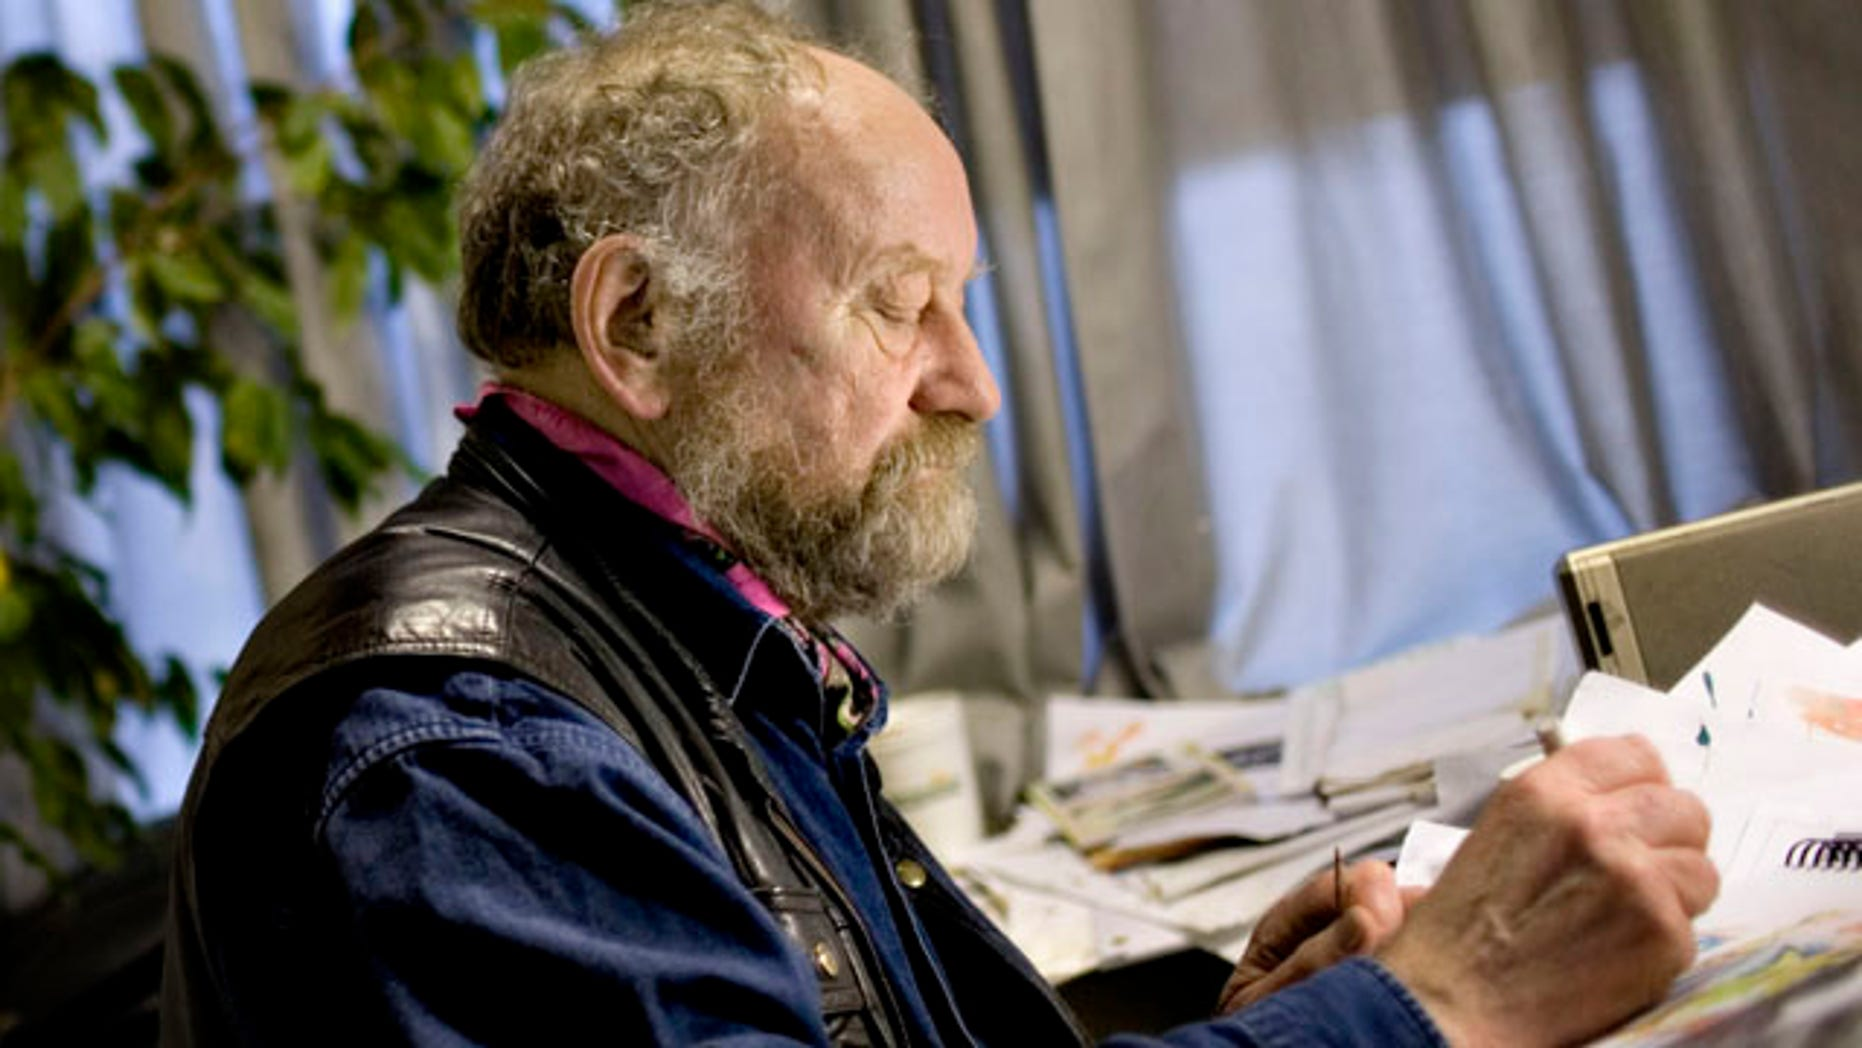 """Danish cartoonist Kurt Westergaard. the cartoonist who caricatured the Prophet Muhammad says he is quitting because he is getting old. Westergaard said """"one has to stop at some point."""" He says he has been working since the age of 23, first as a teacher and then as an artist. He turns 75 on July 13. (AP)"""